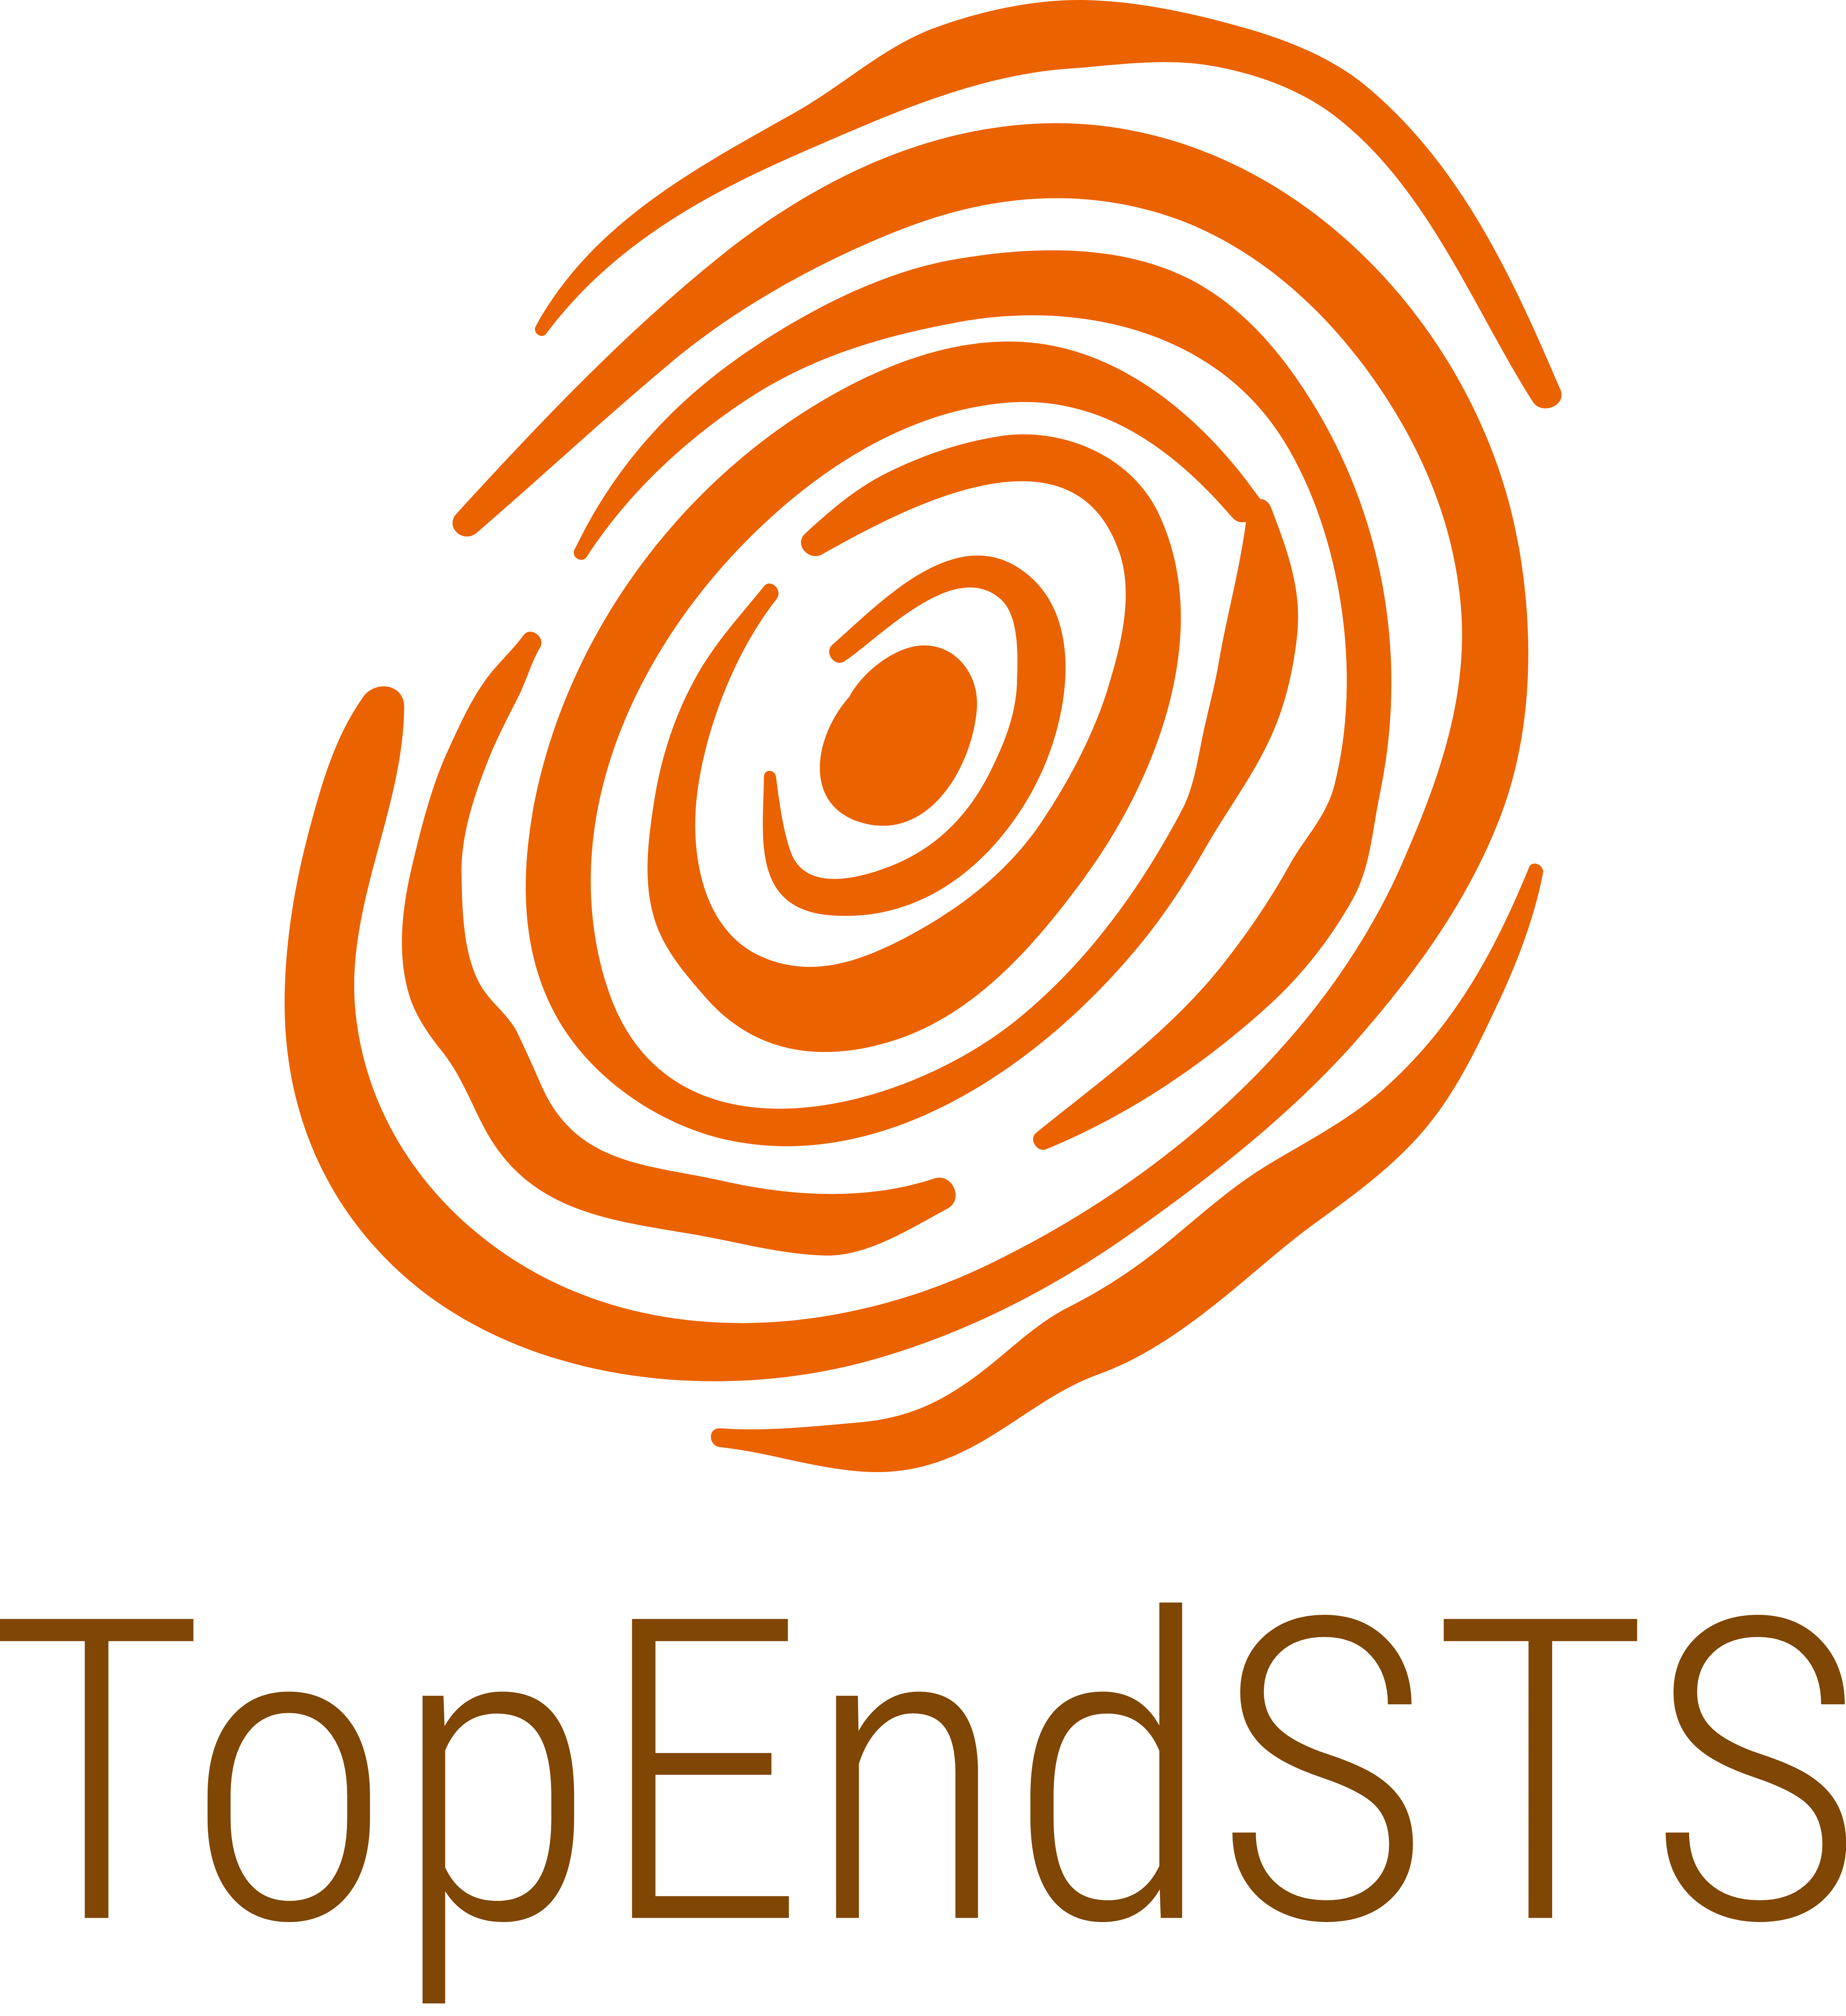 Top End STS